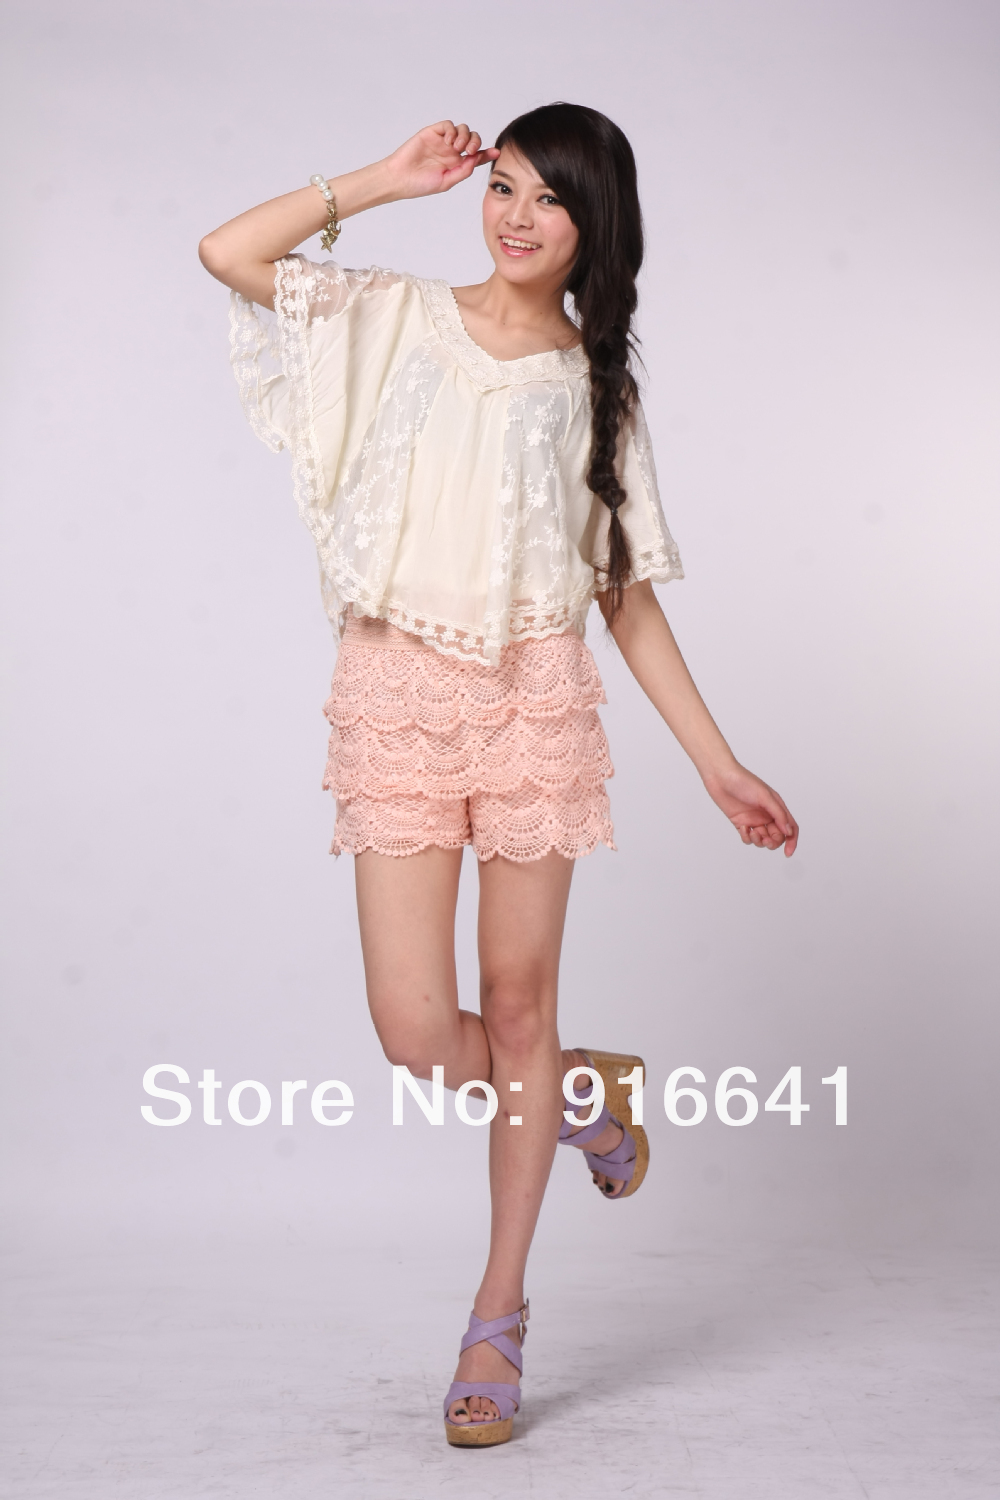 High Qaulity  Womens Sweet New Fashion Lace Tiered Short Skirt Under Safety Pants Shorts Pink Blue-in Shorts from Apparel & Accessories on Aliexpress.com